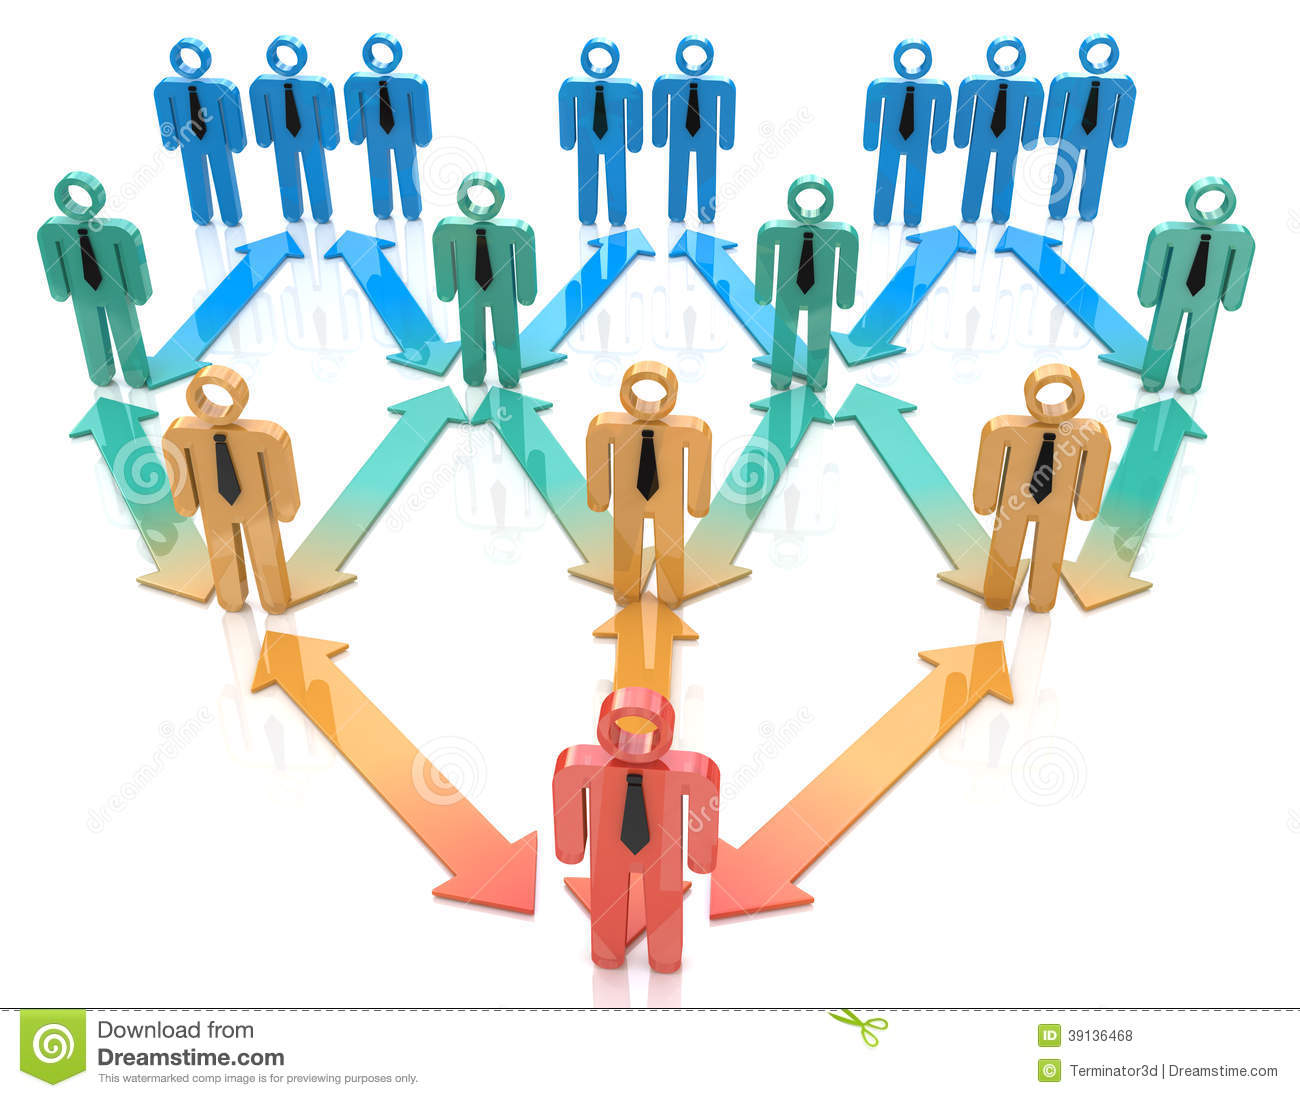 team leader organization hierarchy stock illustration image team leader organization hierarchy